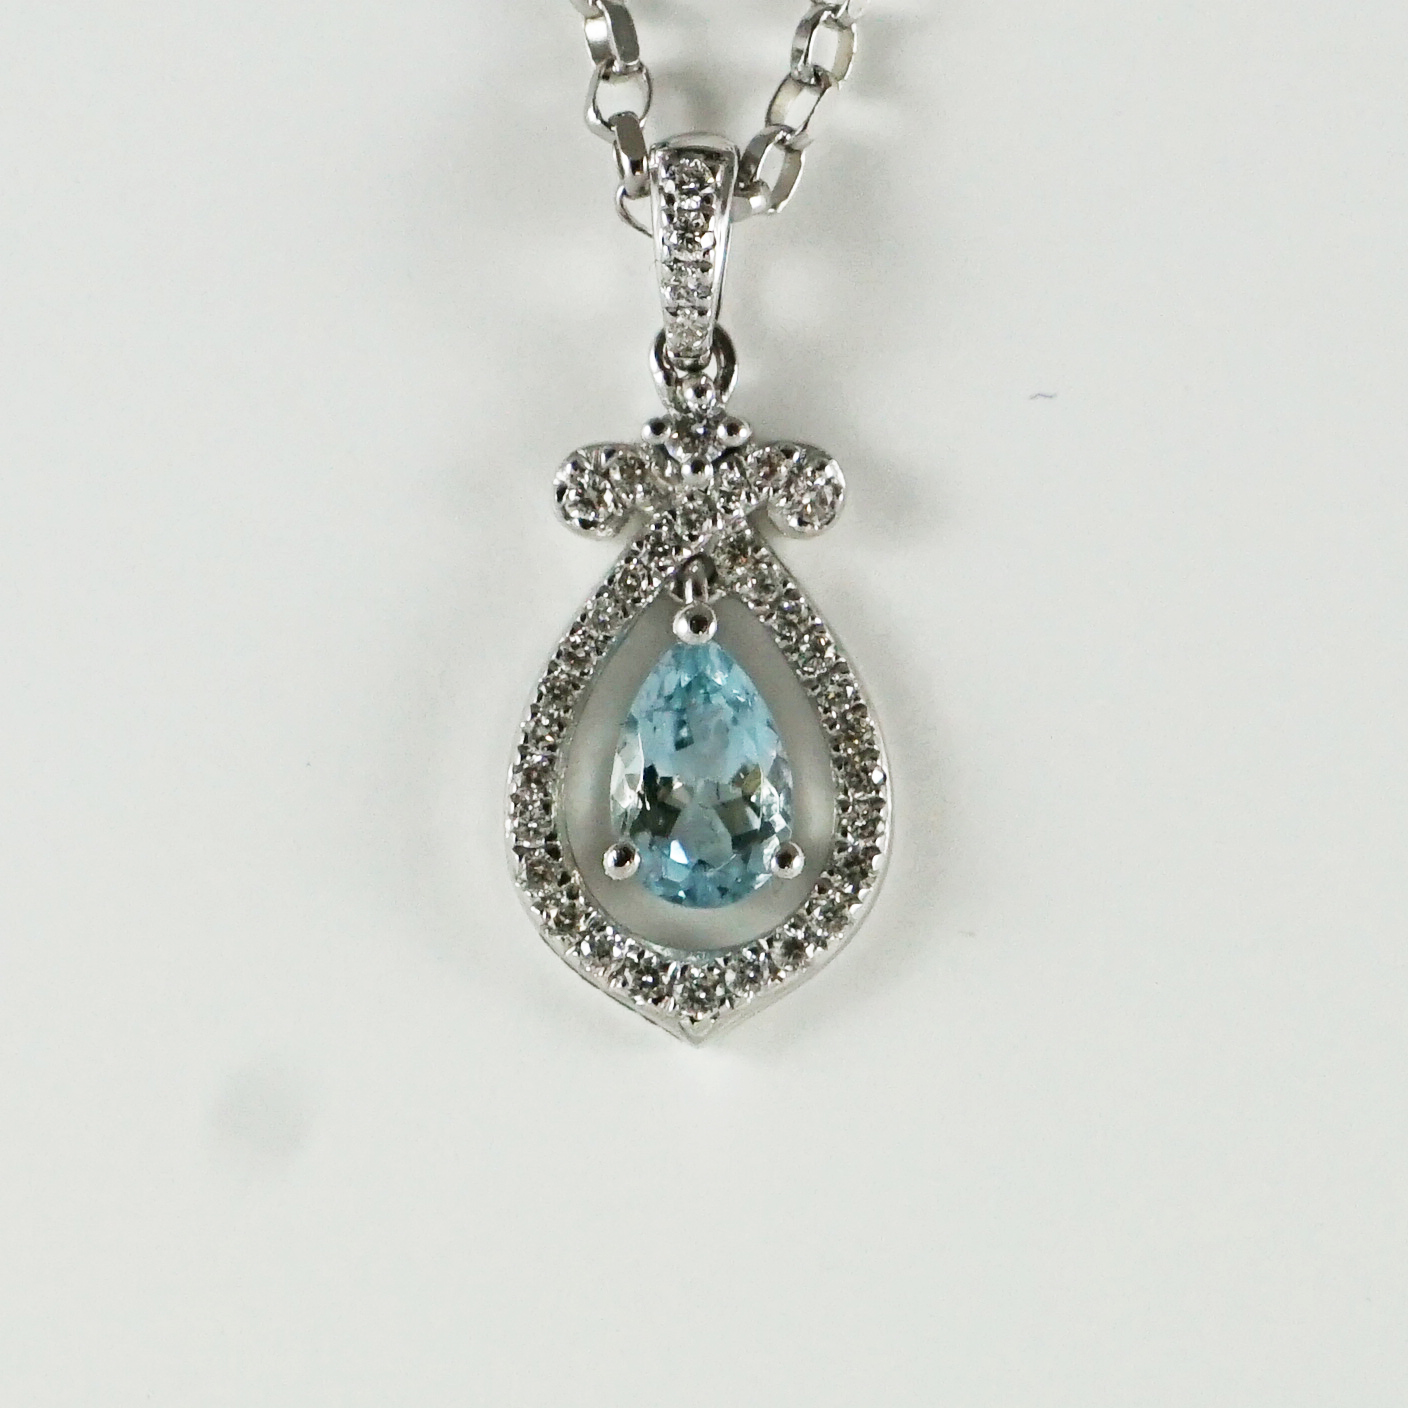 8edcda787 Pear Cut Aquamarine & Diamond Pendant, 18ct White Gold - Baxter & Hanks